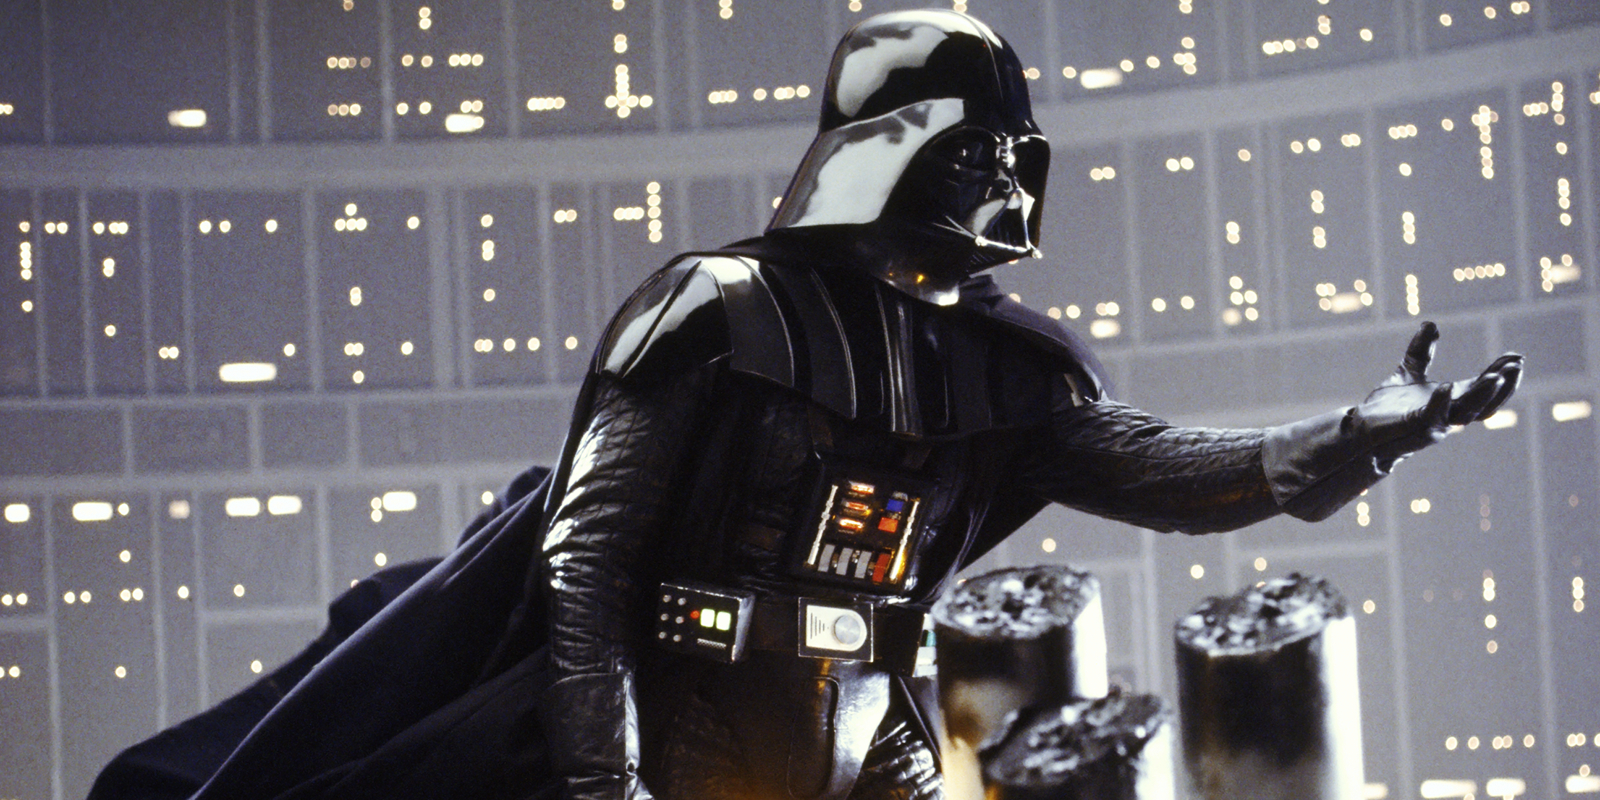 Darth Vader is benne lesz a Han Solo-mozifilmben?